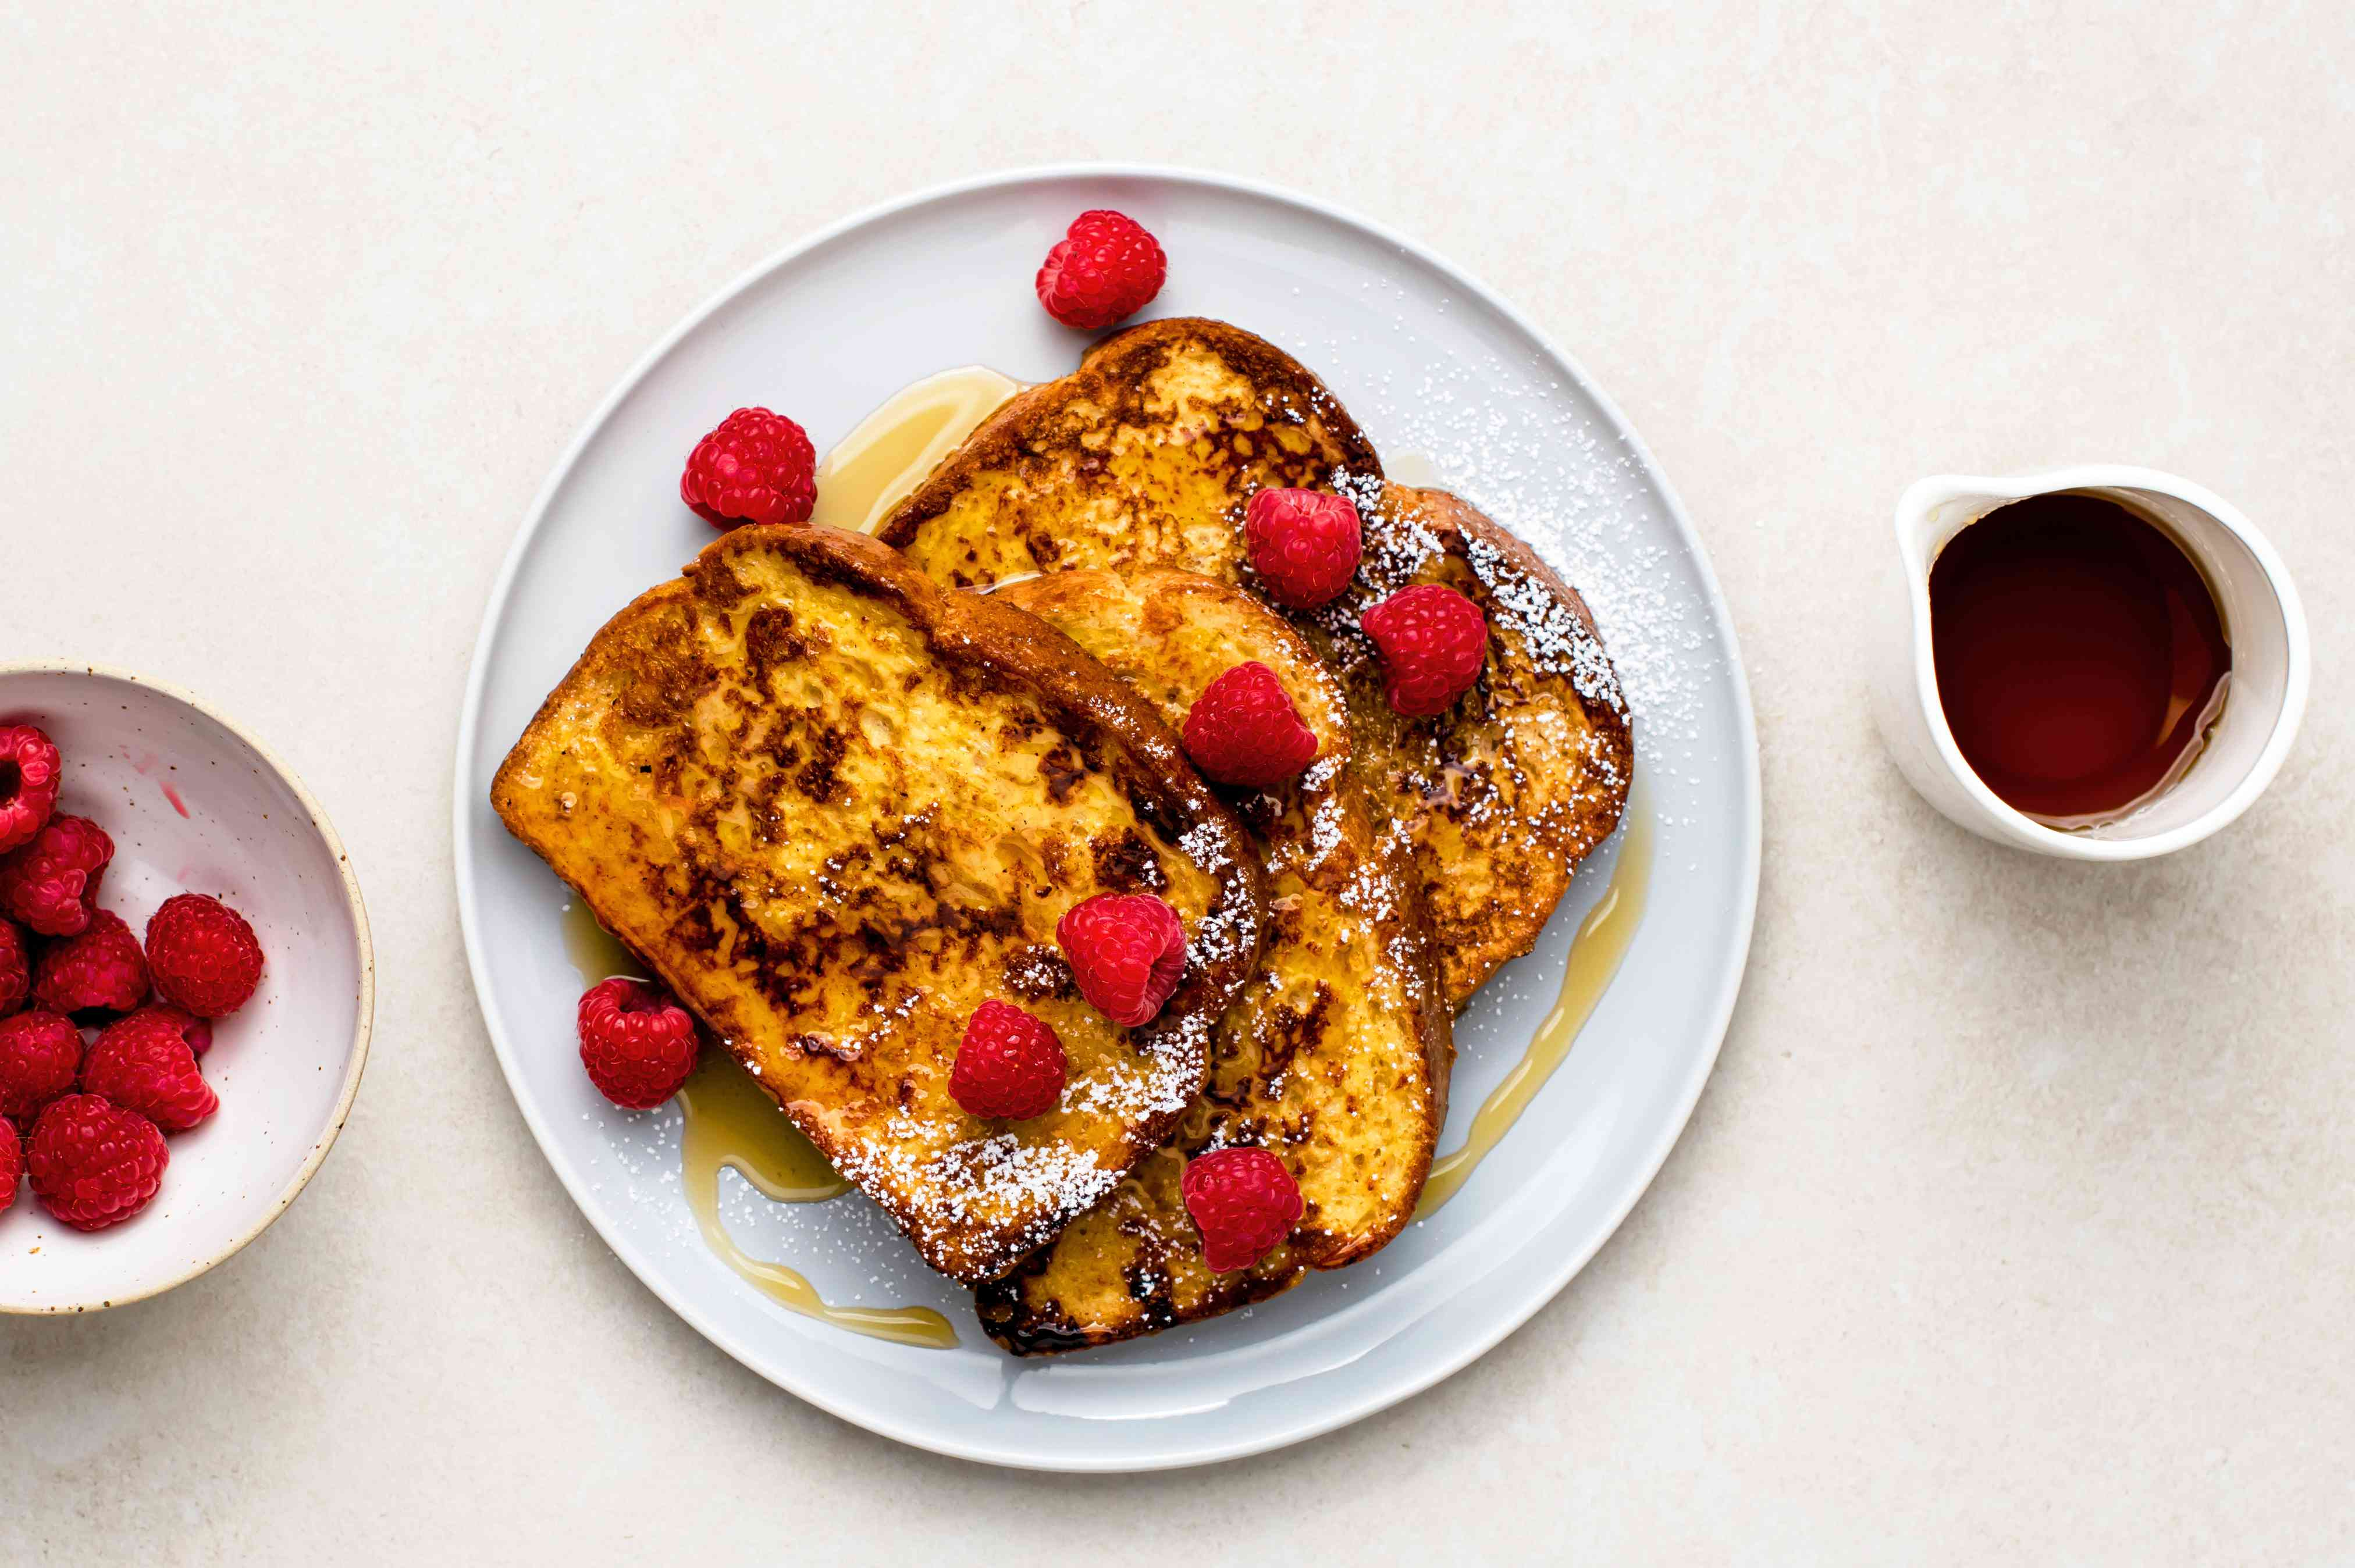 Skillet French Toast in a plate with raspberries